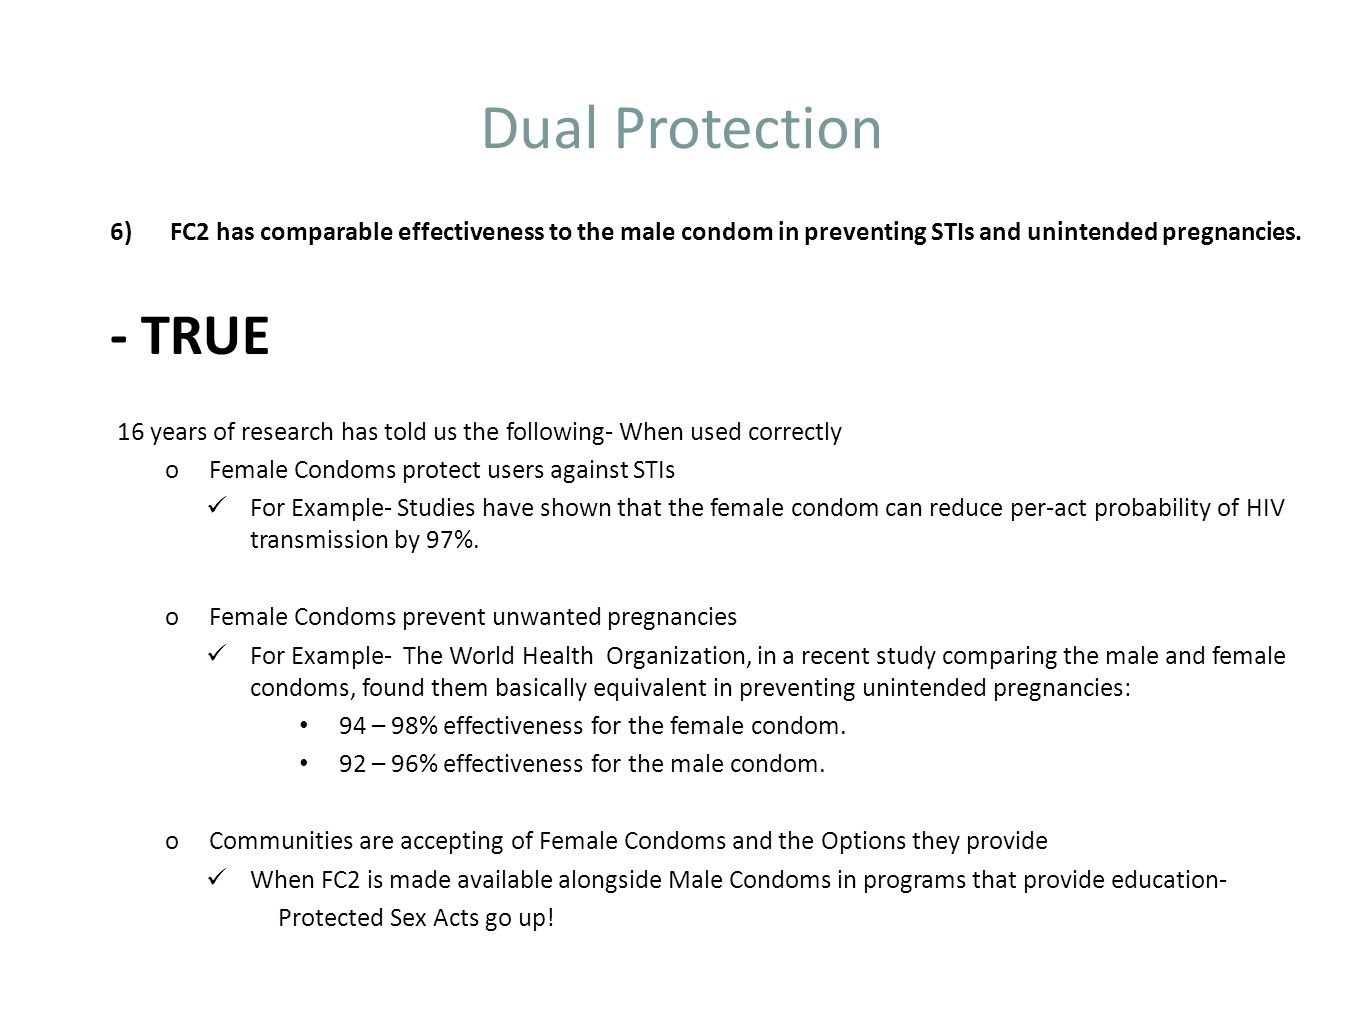 Dual Protection FC2 has comparable effectiveness to the male condom in preventing STIs and unintended pregnancies.